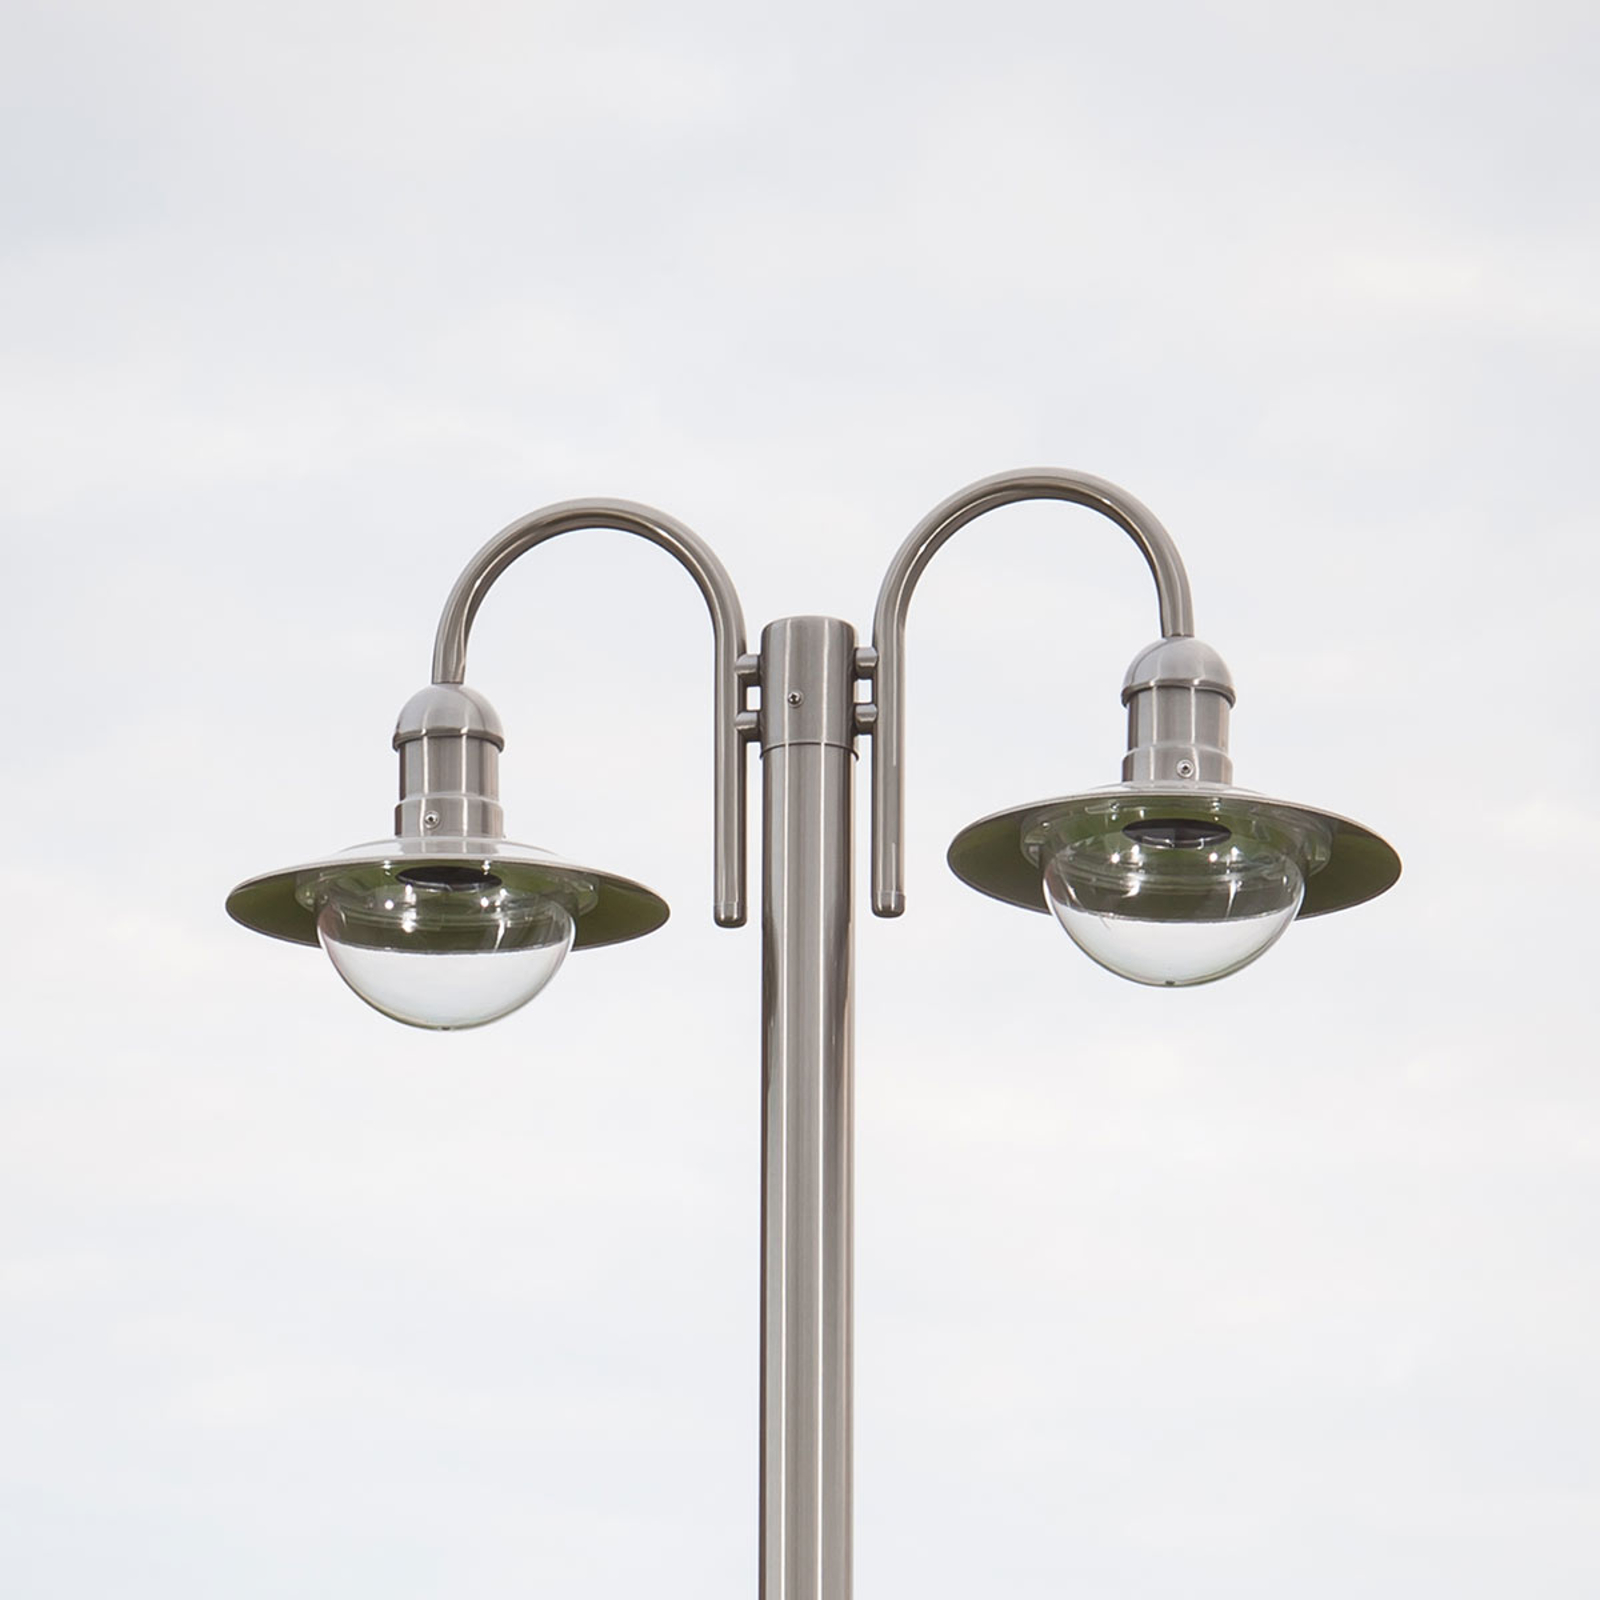 Damion stainless steel post light with two lights_9960019_1